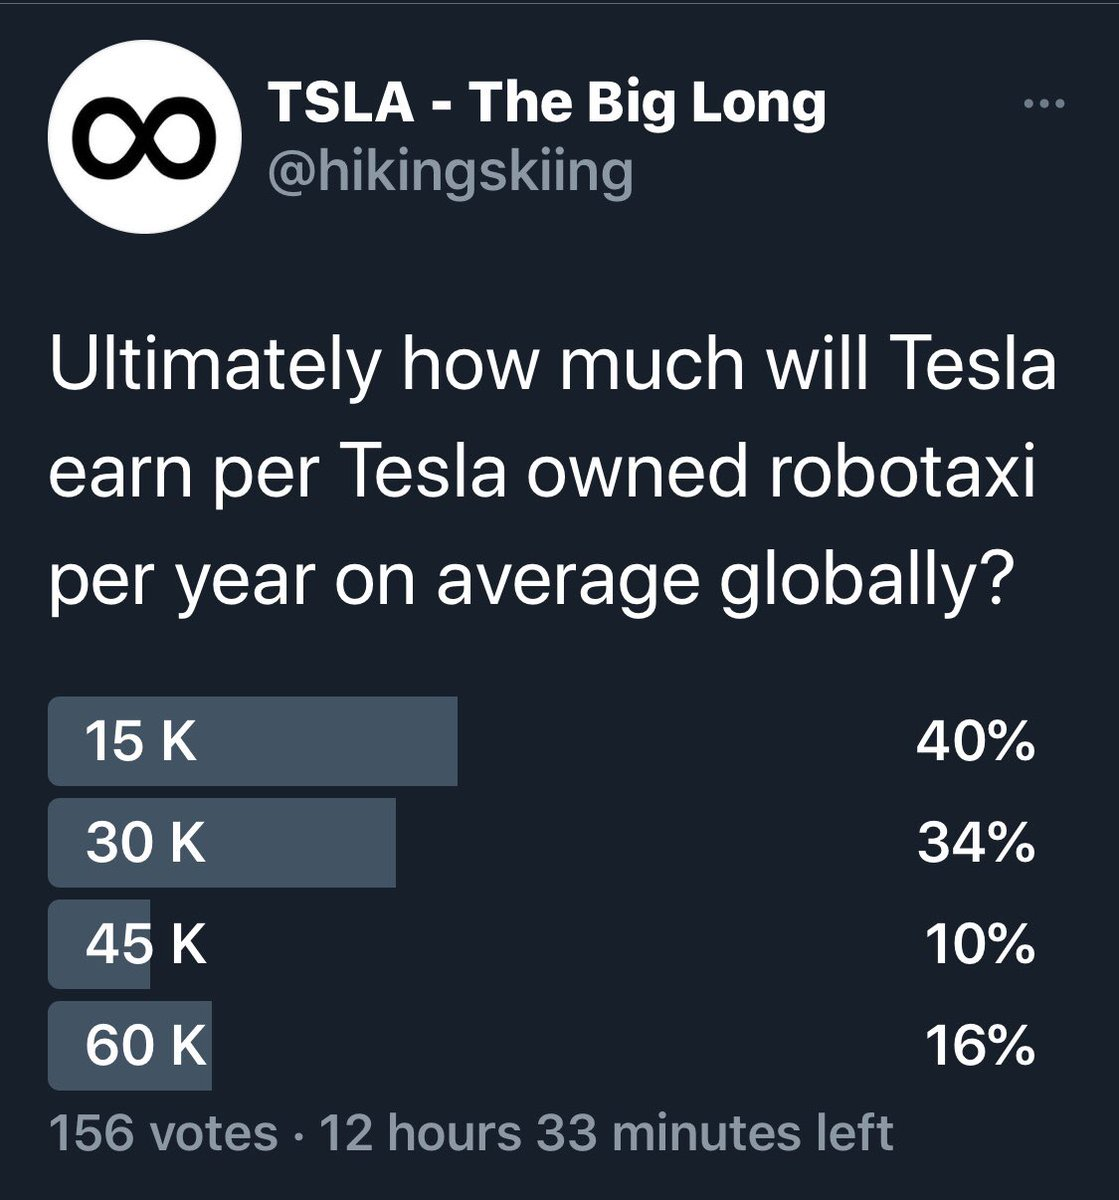 "$30.3K per year is the ""wisdom of crowds"" weighted average estimate for Robotaxi earnings per Tesla owned vehicle. https://t.co/kLa1Kut3kt"